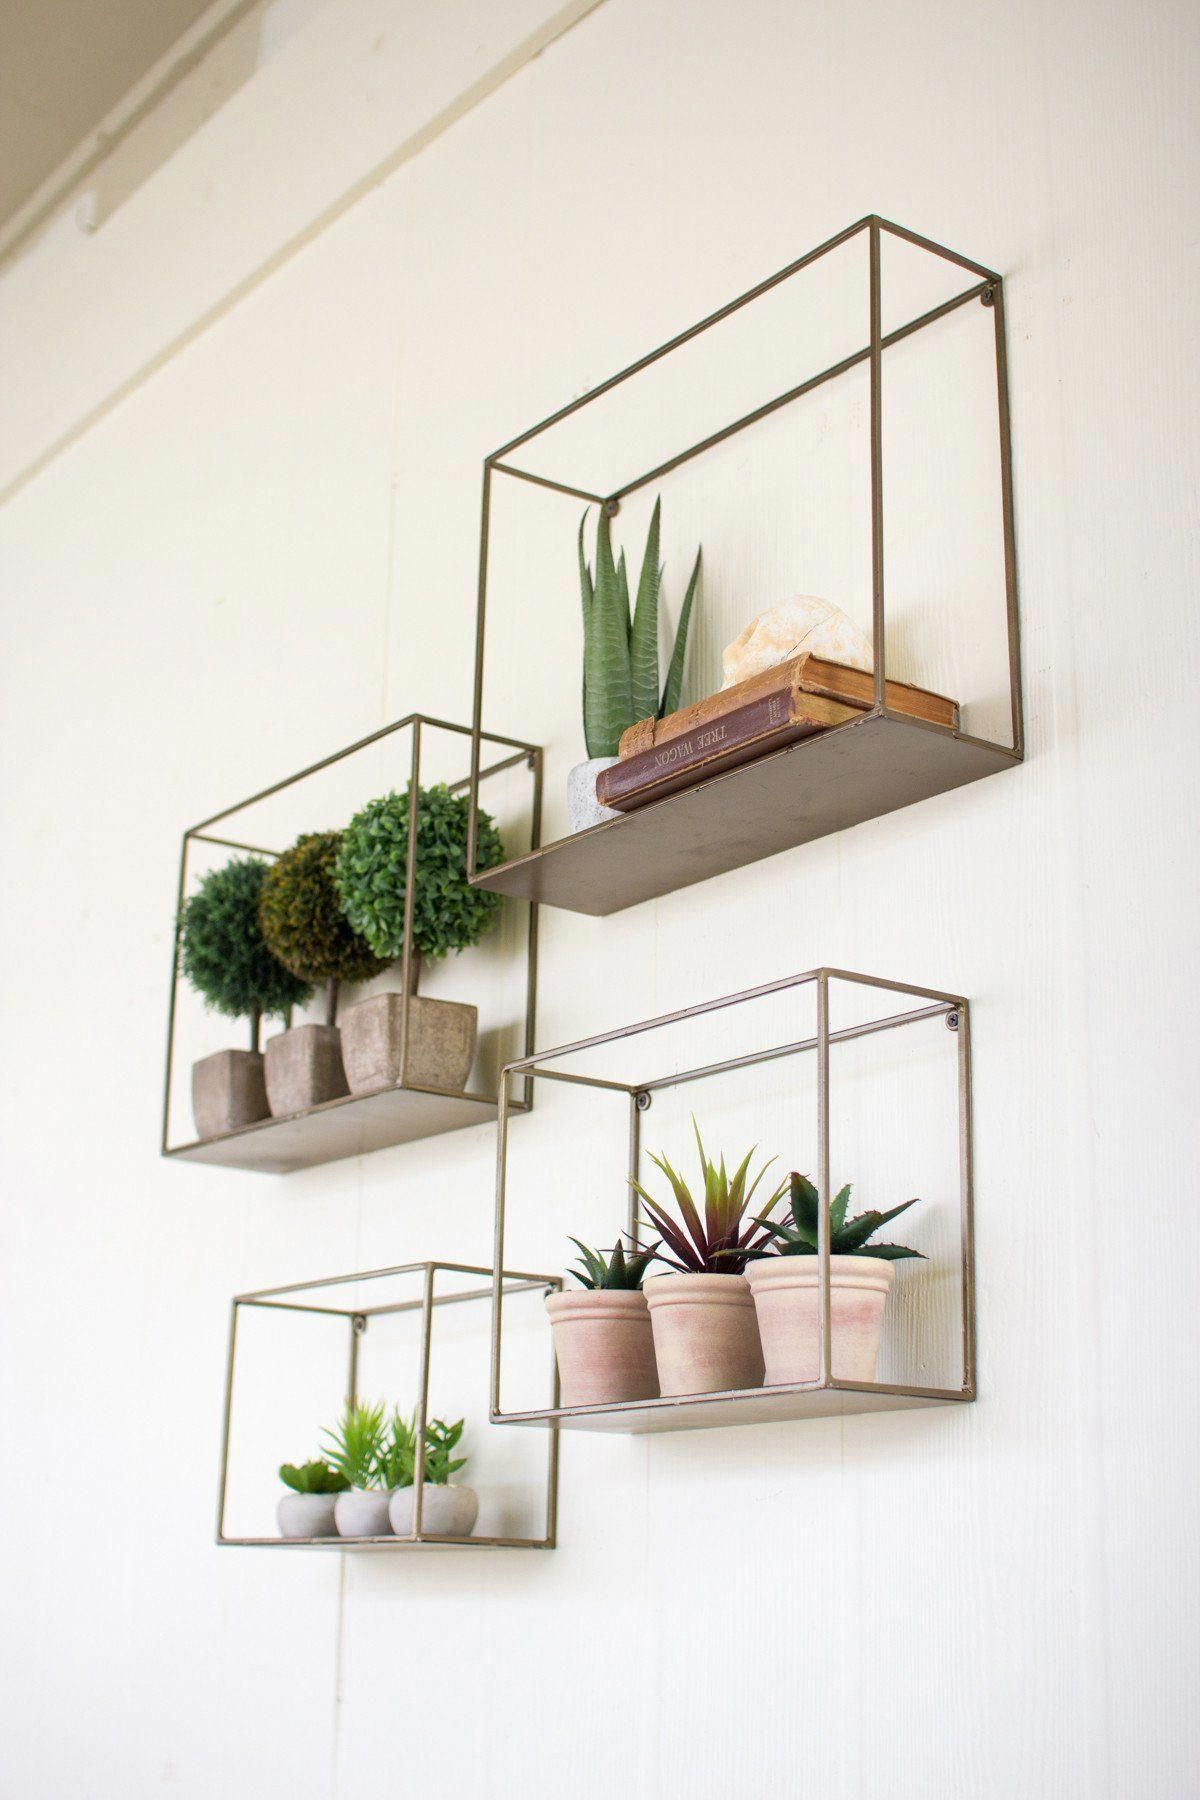 Diy Home Decor Resource On Clever Arrangements To Take Action Seriously Planning Ref Number 64633851 Handmade Home Decor Metal Shelves Home Decor Accessories